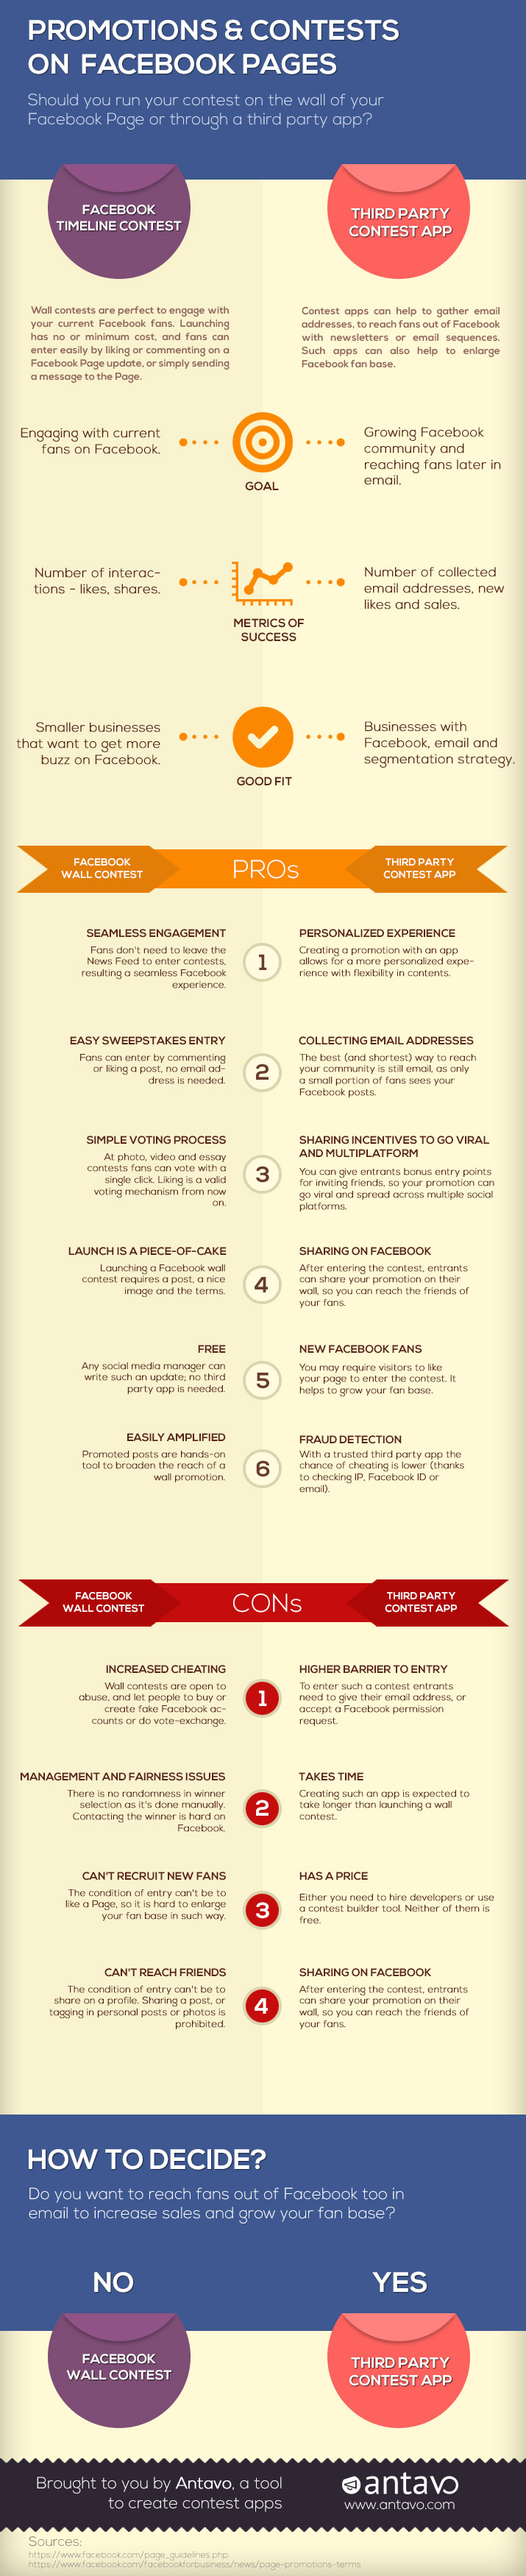 PromotionsAndContestsOnFacebookPages-AntavoInfographic